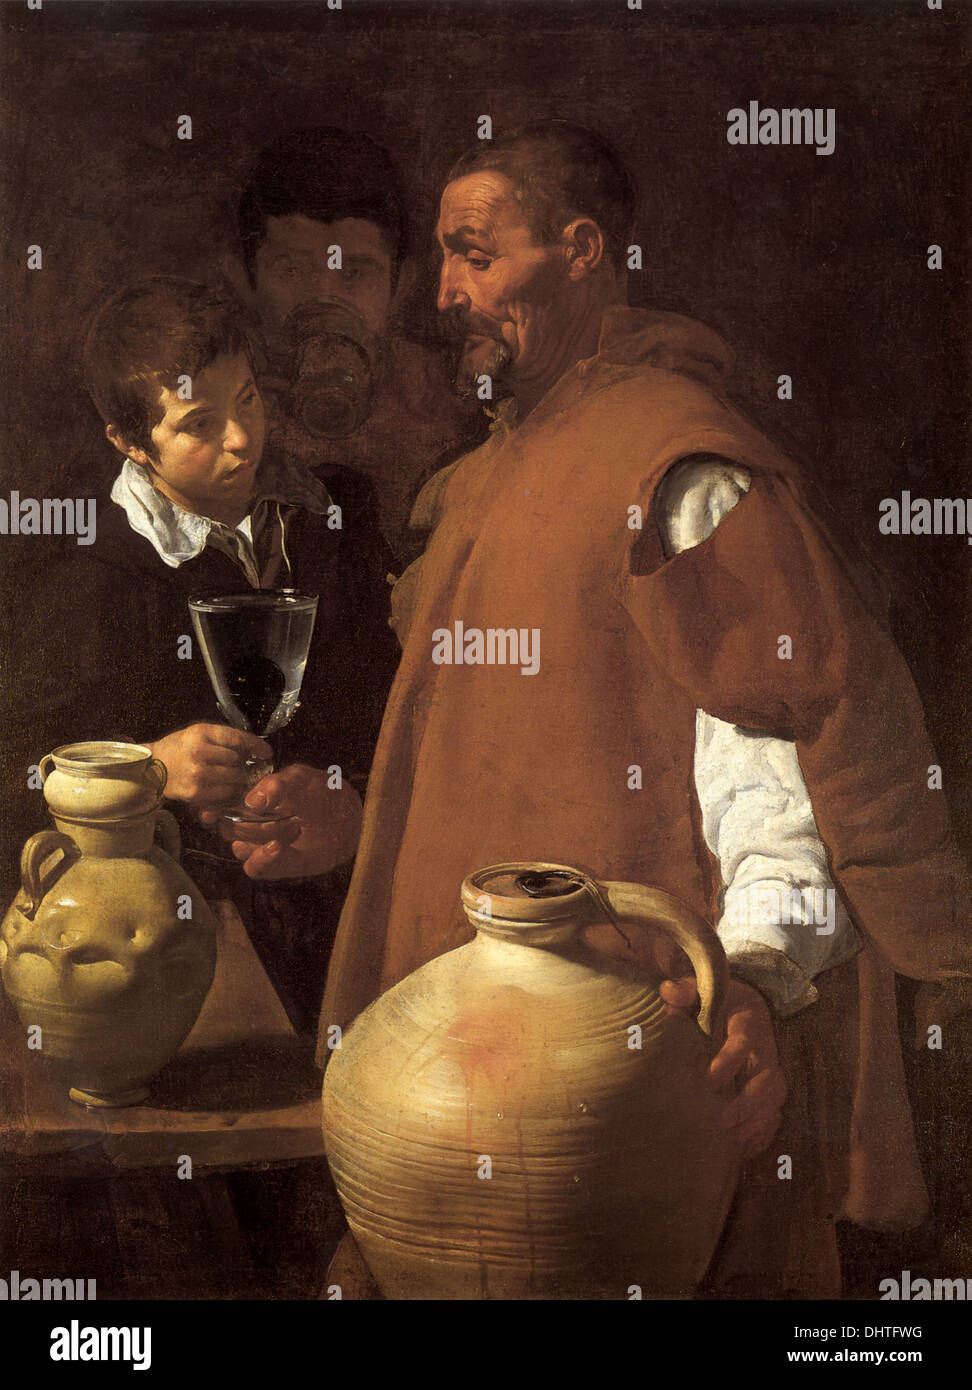 The Waterseller of Seville - by Diego Velázquez, 1622 - Stock Image